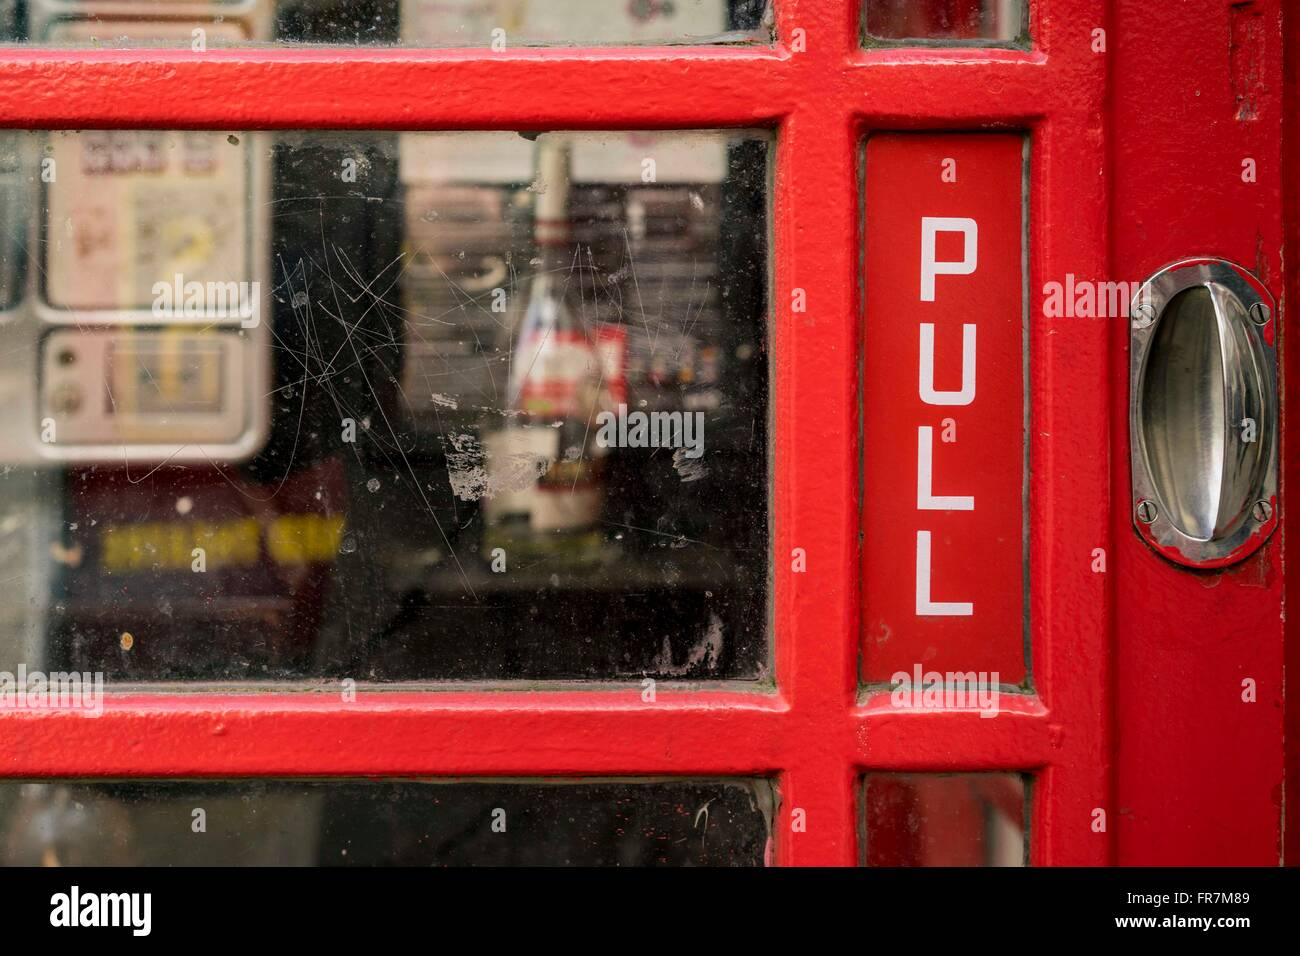 View in through the door of a red public telephone box,London, UK - Stock Image